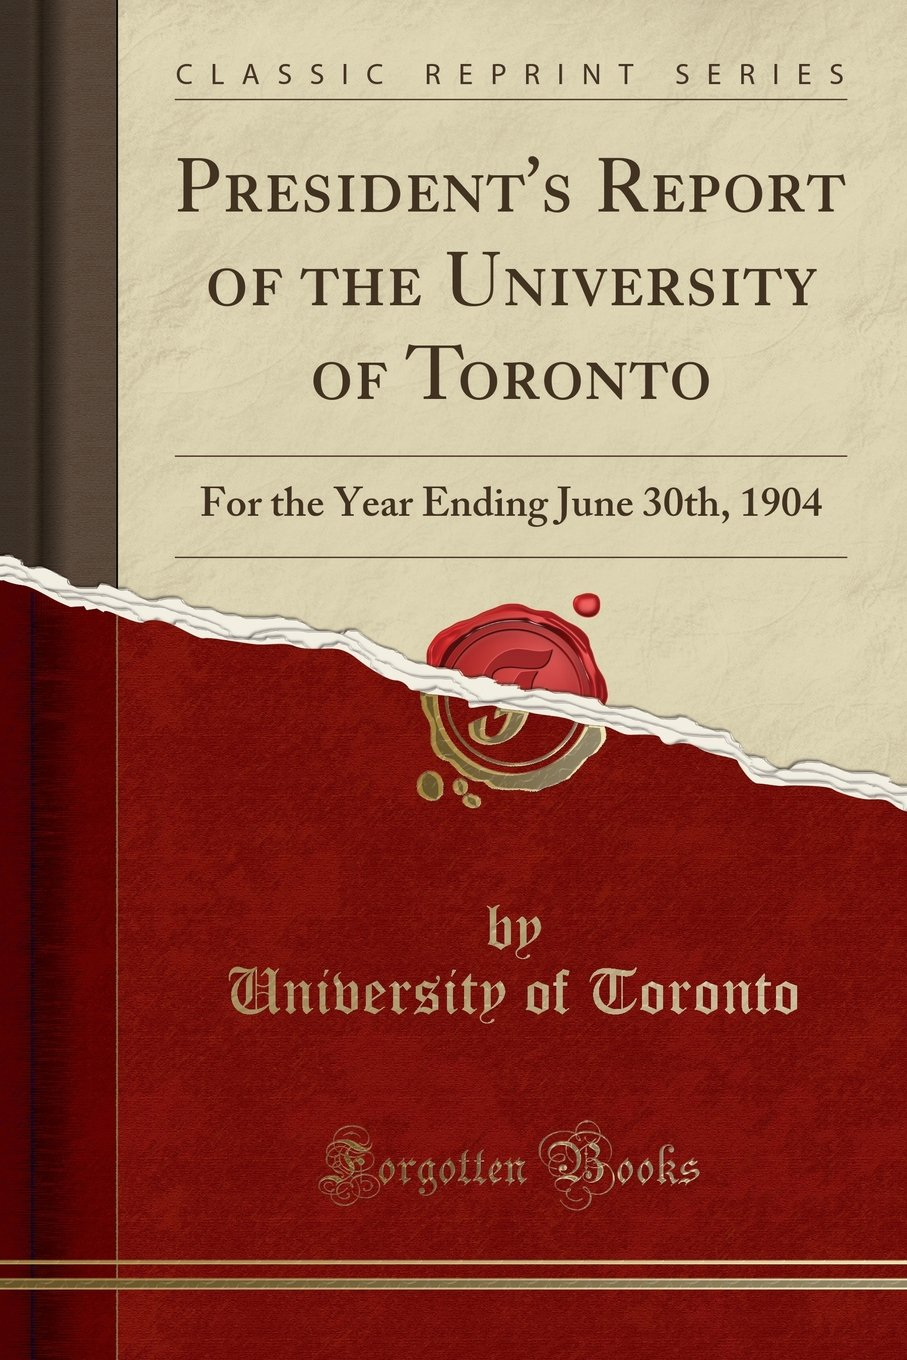 President's Report of the University of Toronto: For the Year Ending June 30th, 1904 (Classic Reprint) PDF